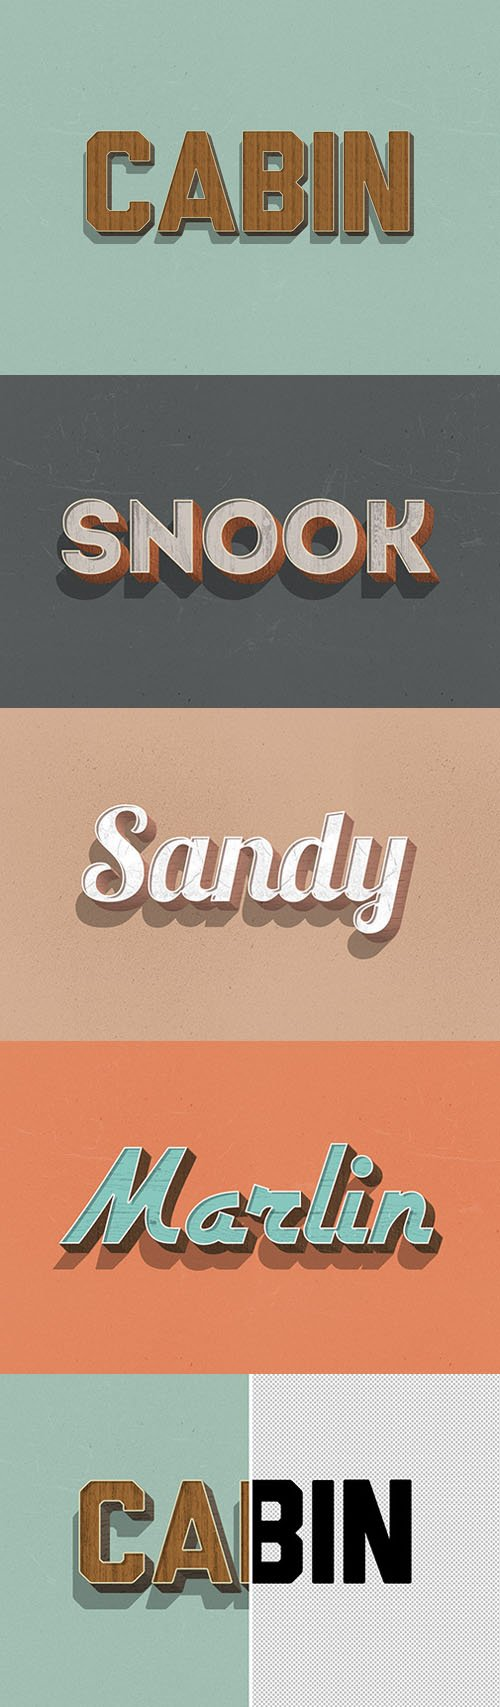 Retro 3D Wood PSD Text Effects